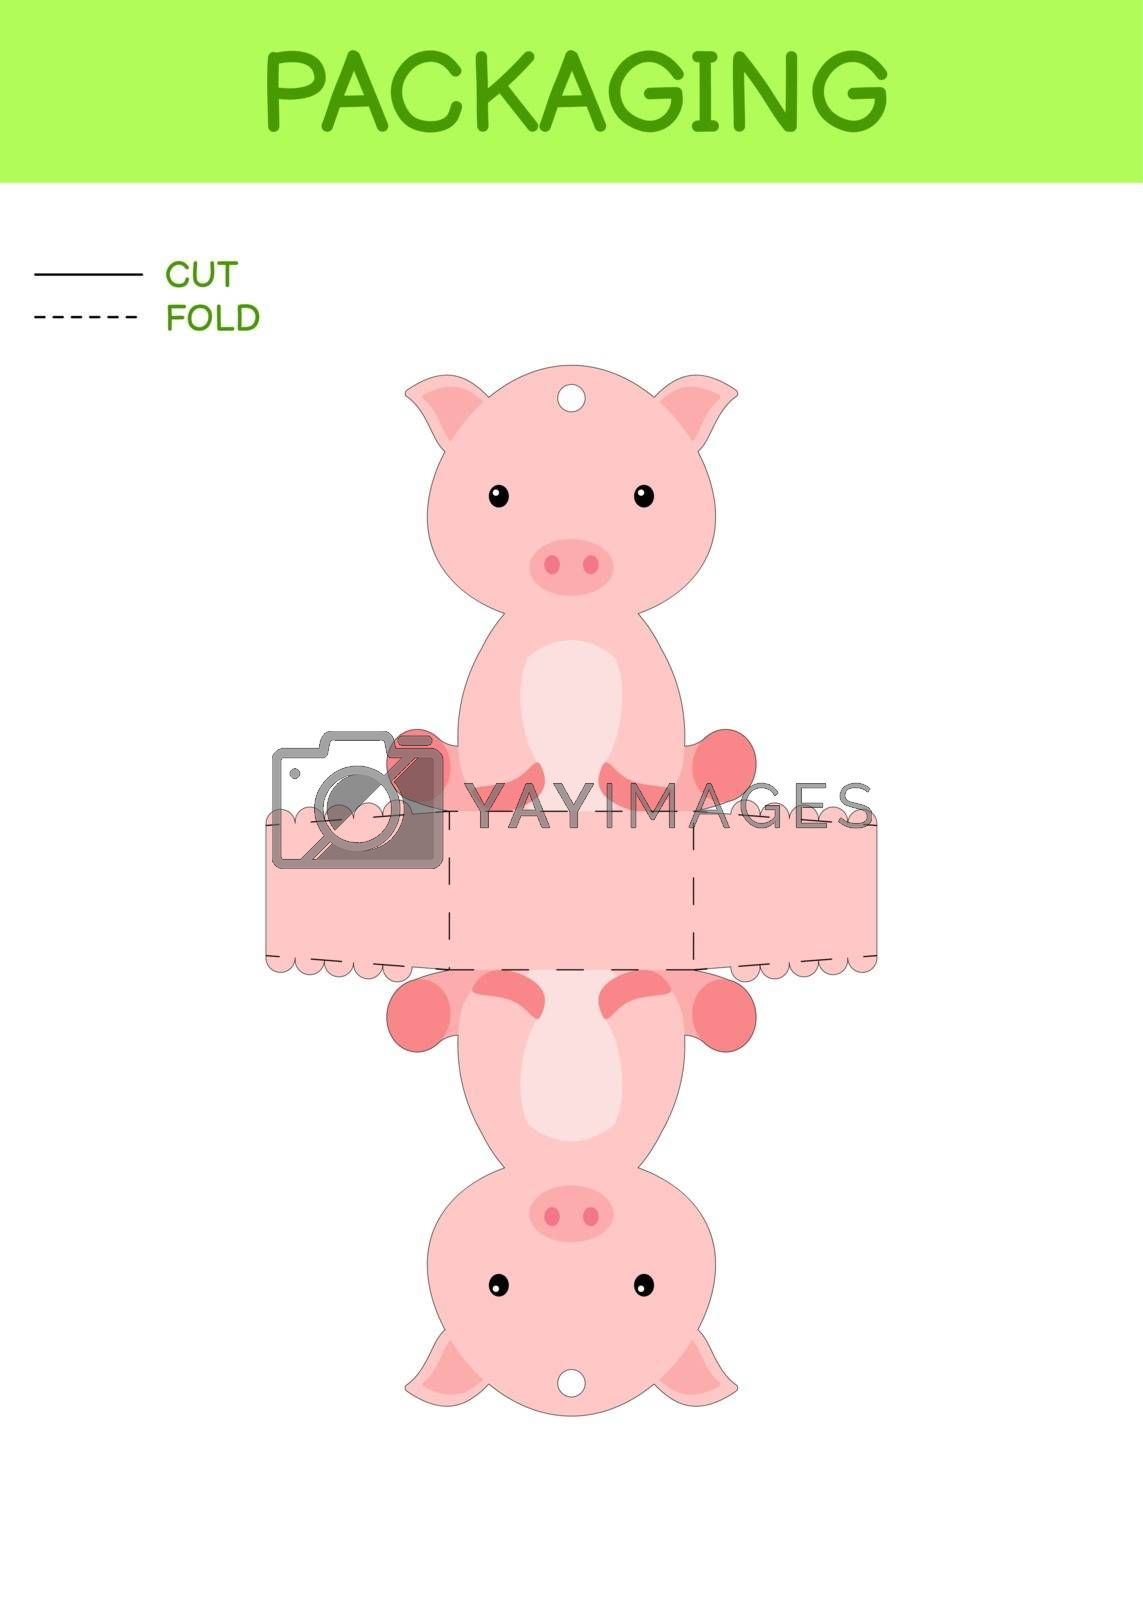 DIY party favor box die cut template design for birthdays, baby showers with cute pig for sweets, candies, small presents. Printable color scheme. Print, cut out, fold, glue. Vector stock illustration